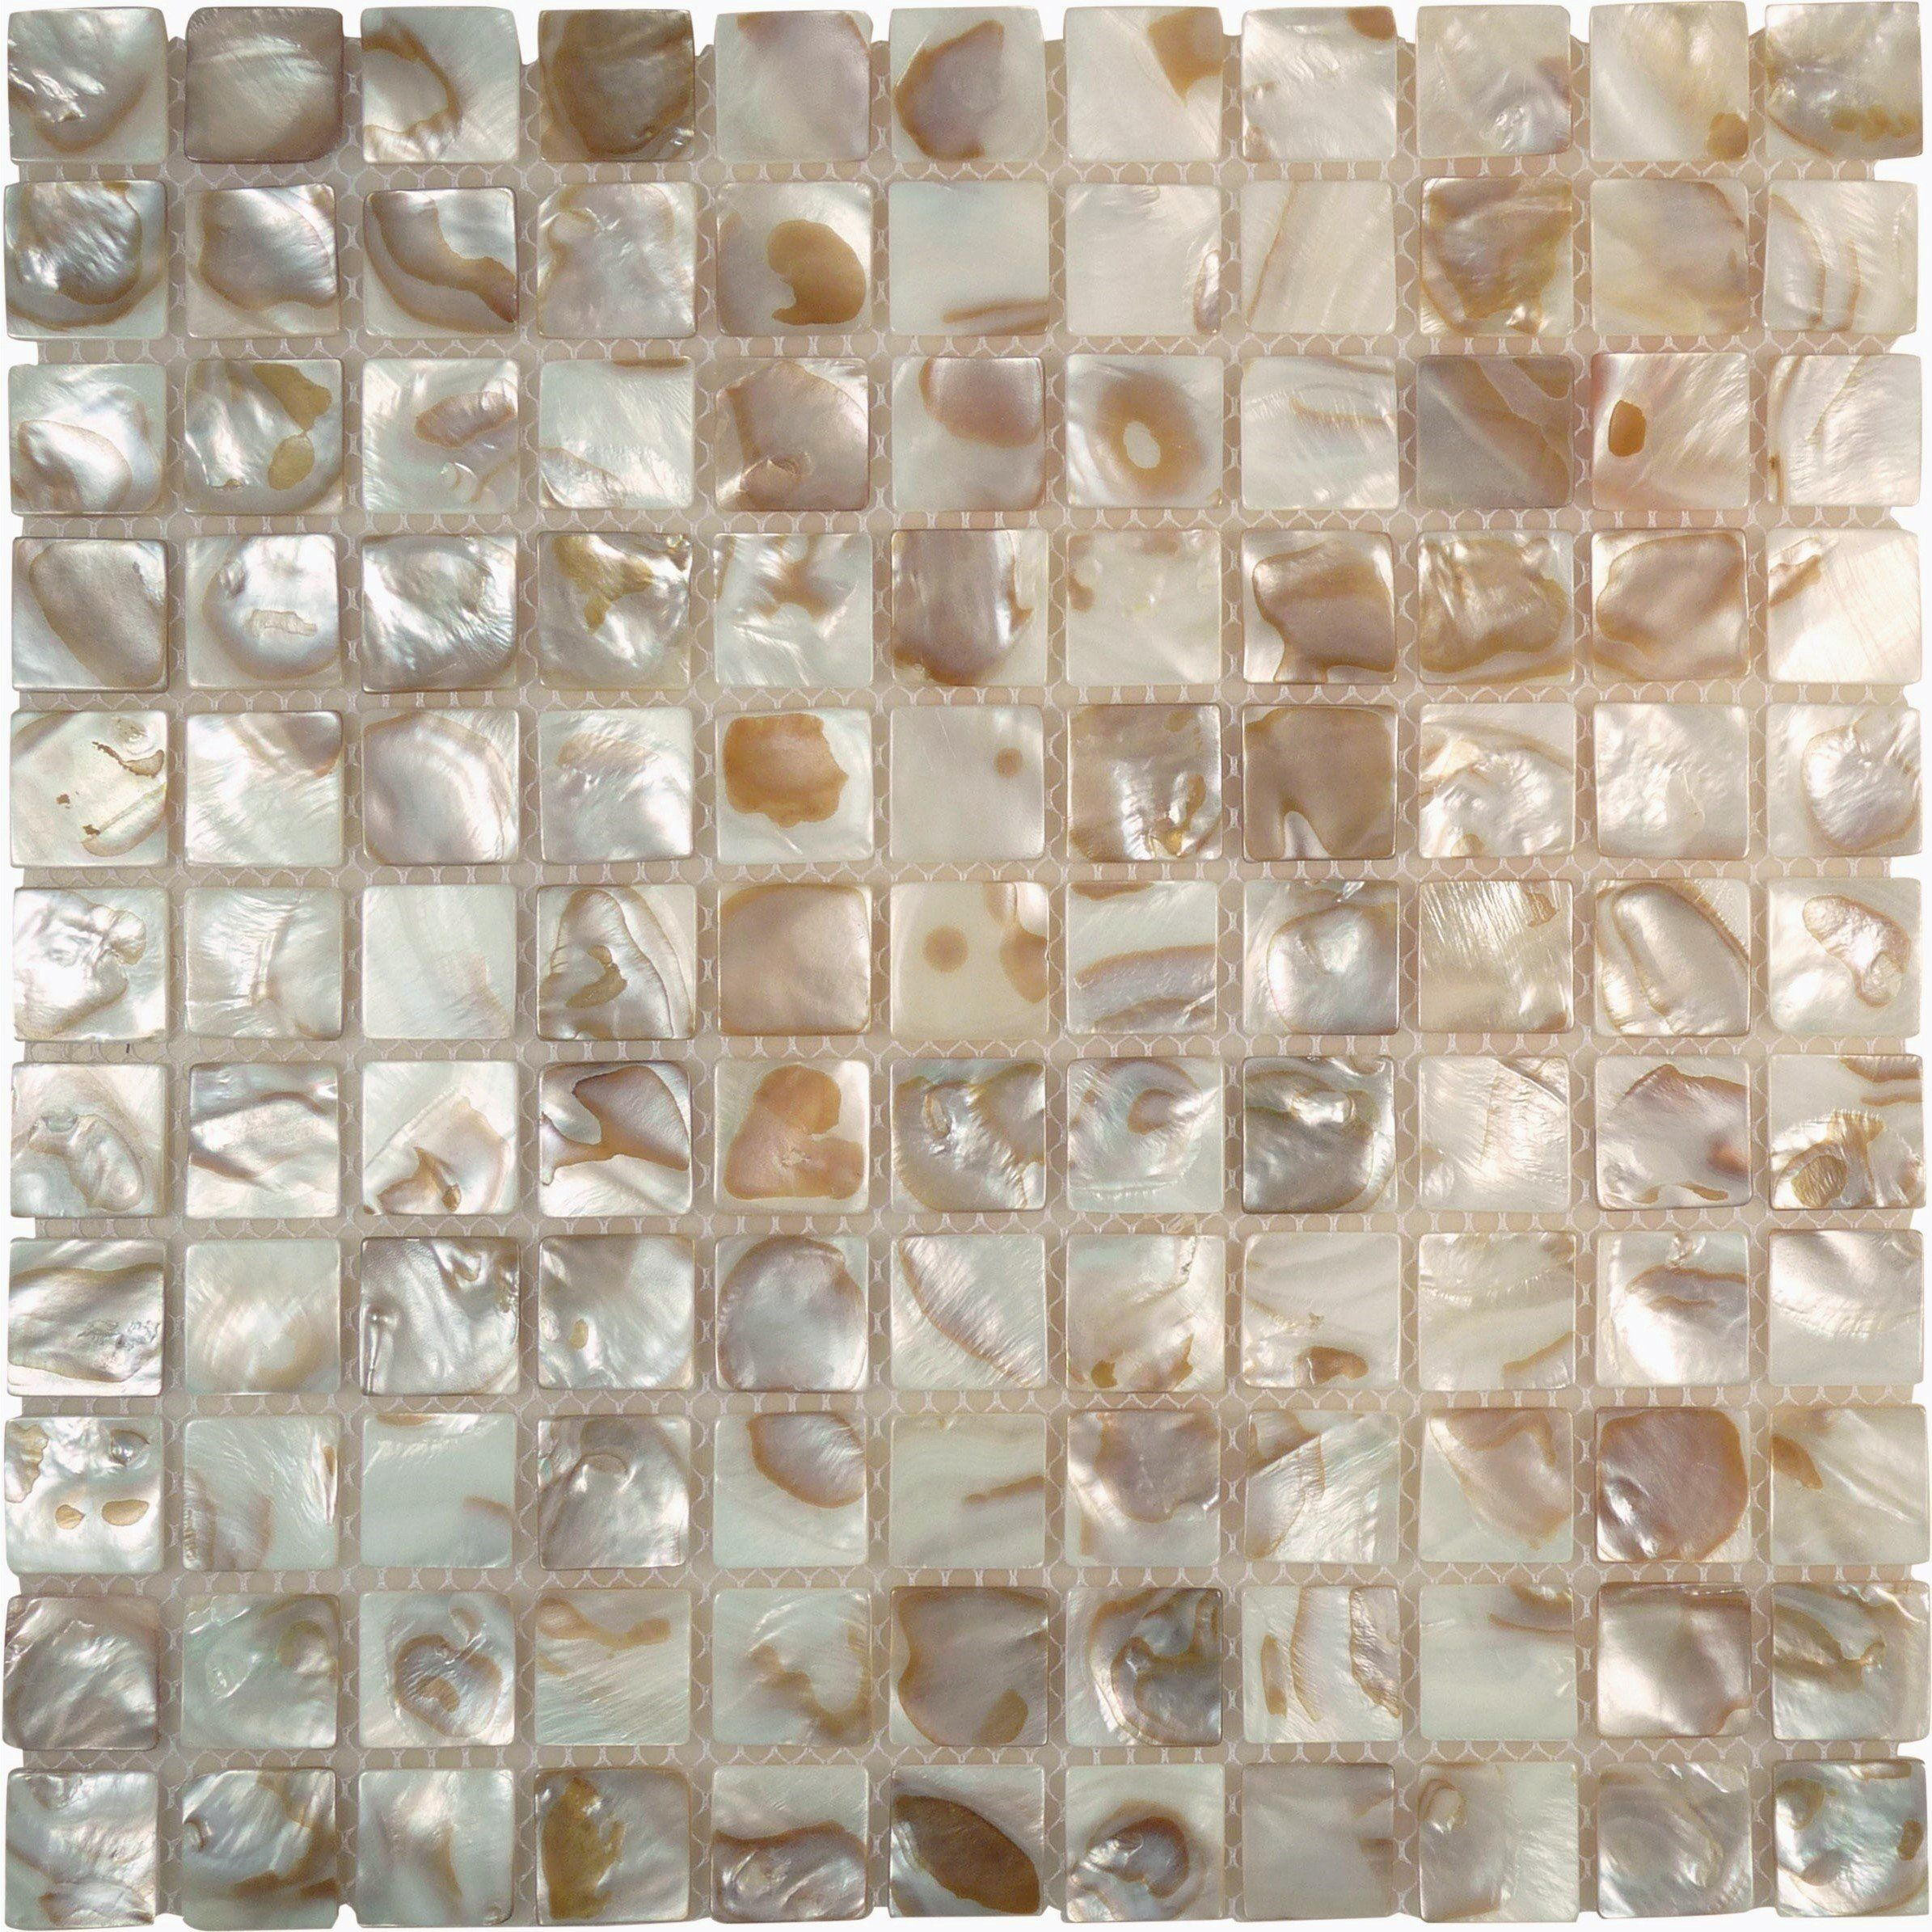 This Tile Has A Few Color Variations Sheet Size 11 3 4 X 11 3 4 Tile Size 1 X 1 Tiles Per Sheet 121 Tile Thick Pearl Tile Shell Mosaic Tile Shell Mosaic